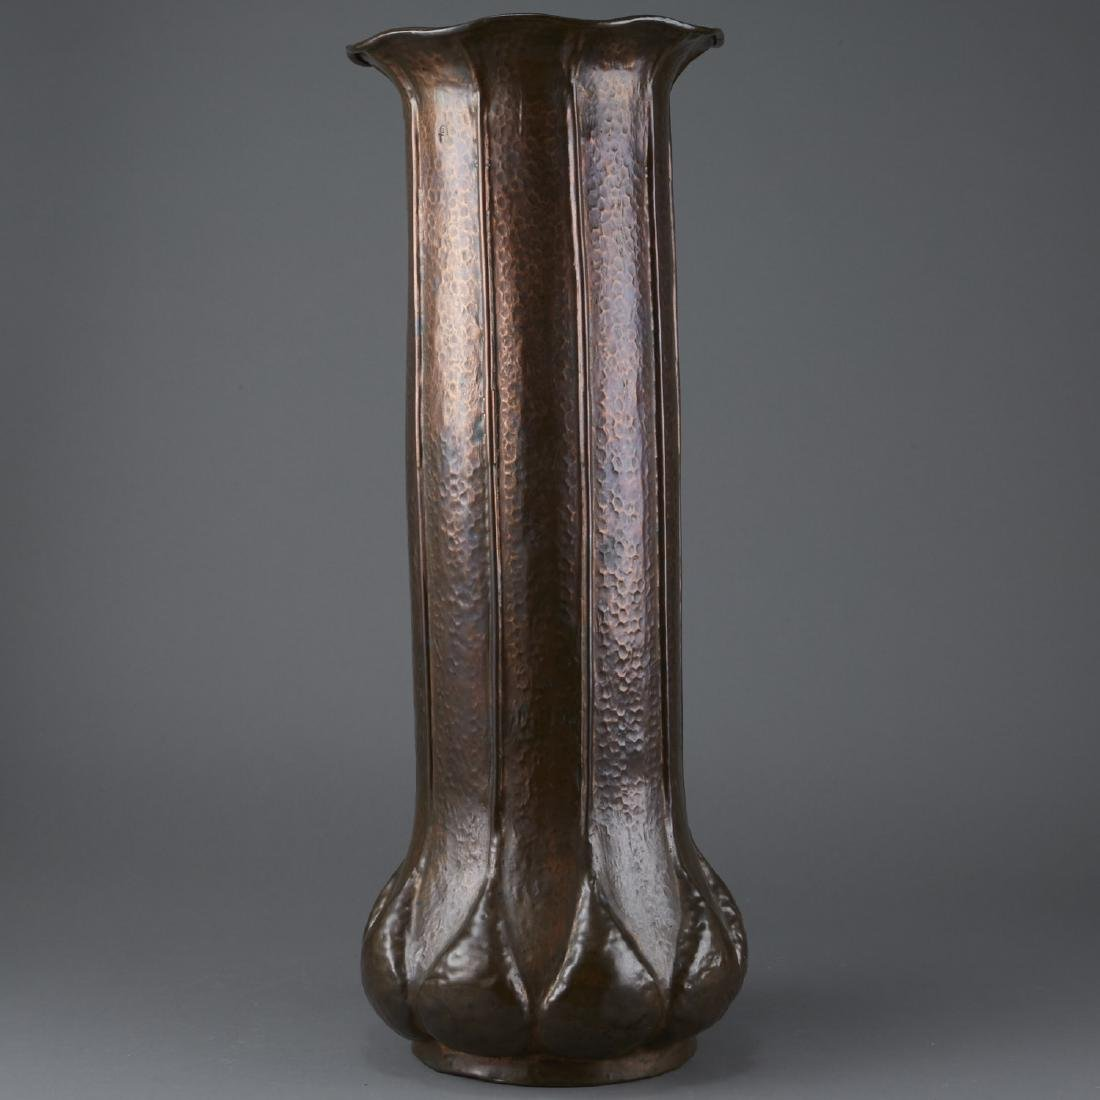 Hammered Copper Arts and Crafts Umbrella Stand - 4